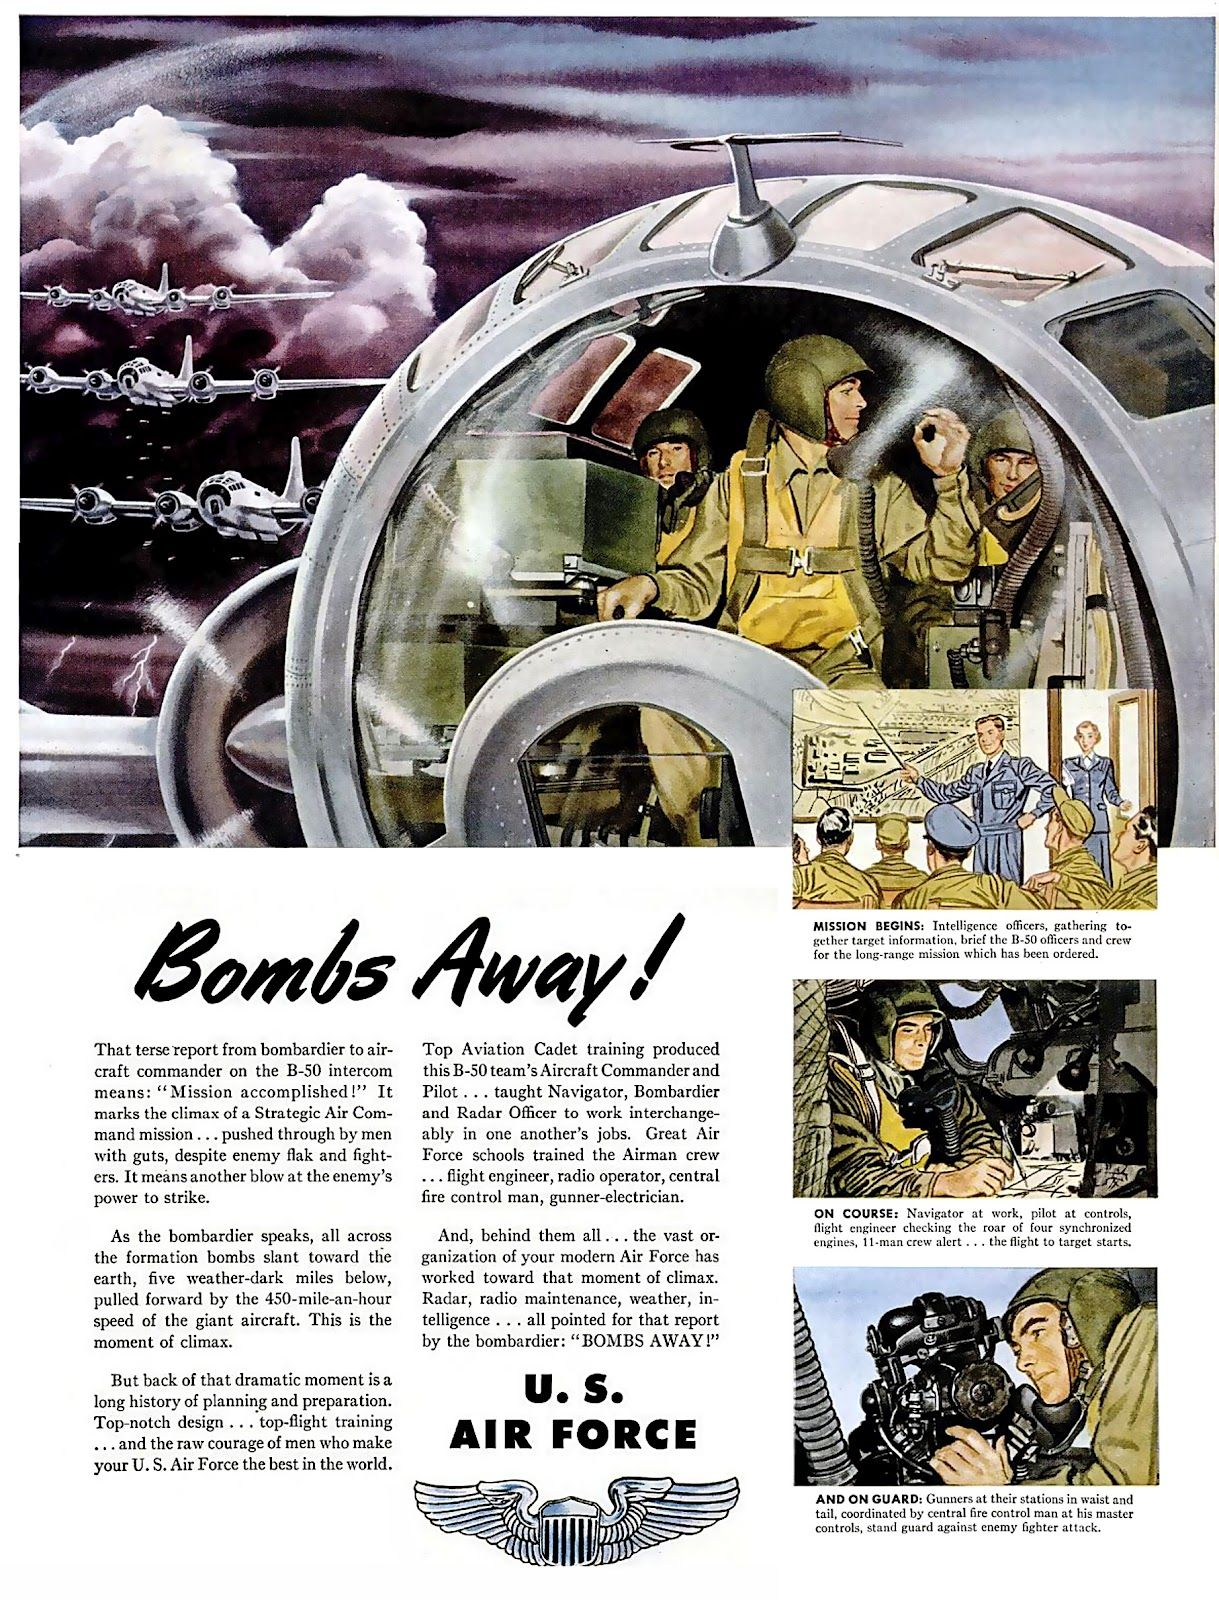 bombs away! | American Military Aircraft | Ww2 posters, War, Ww2